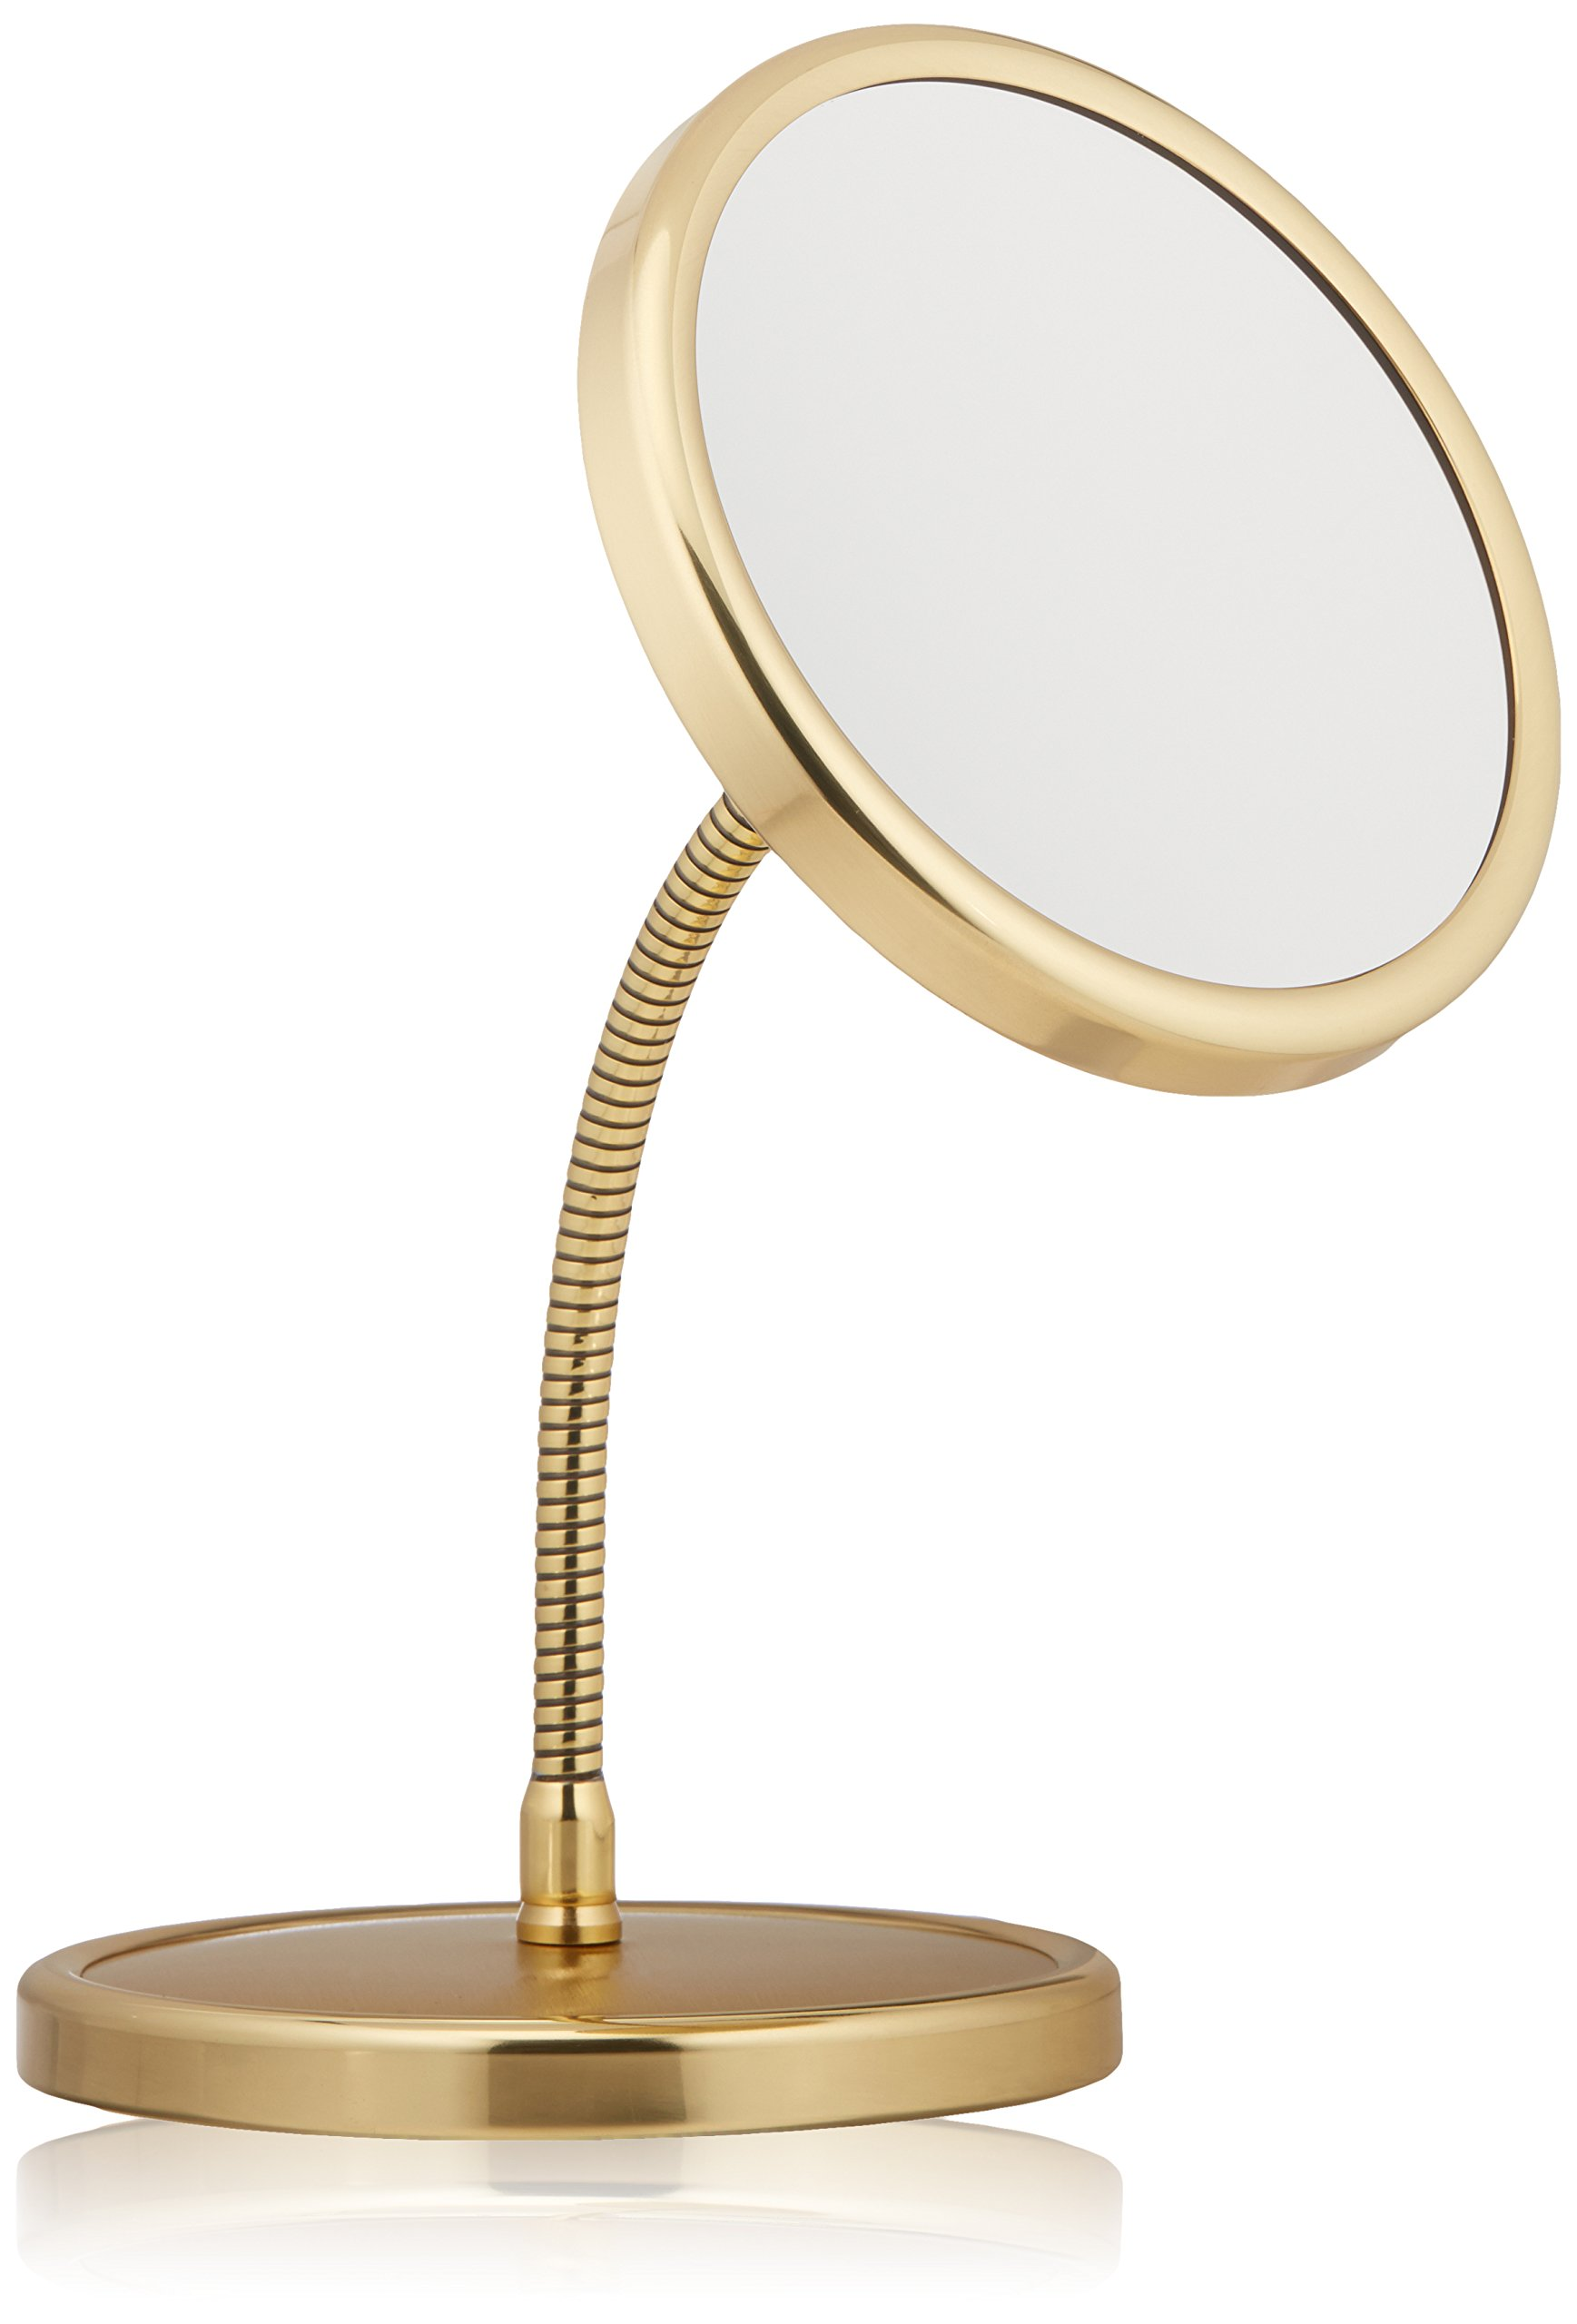 Frasco Mirrors Swan Neck Double Sided Mirror, Brass, 1.5 lb.